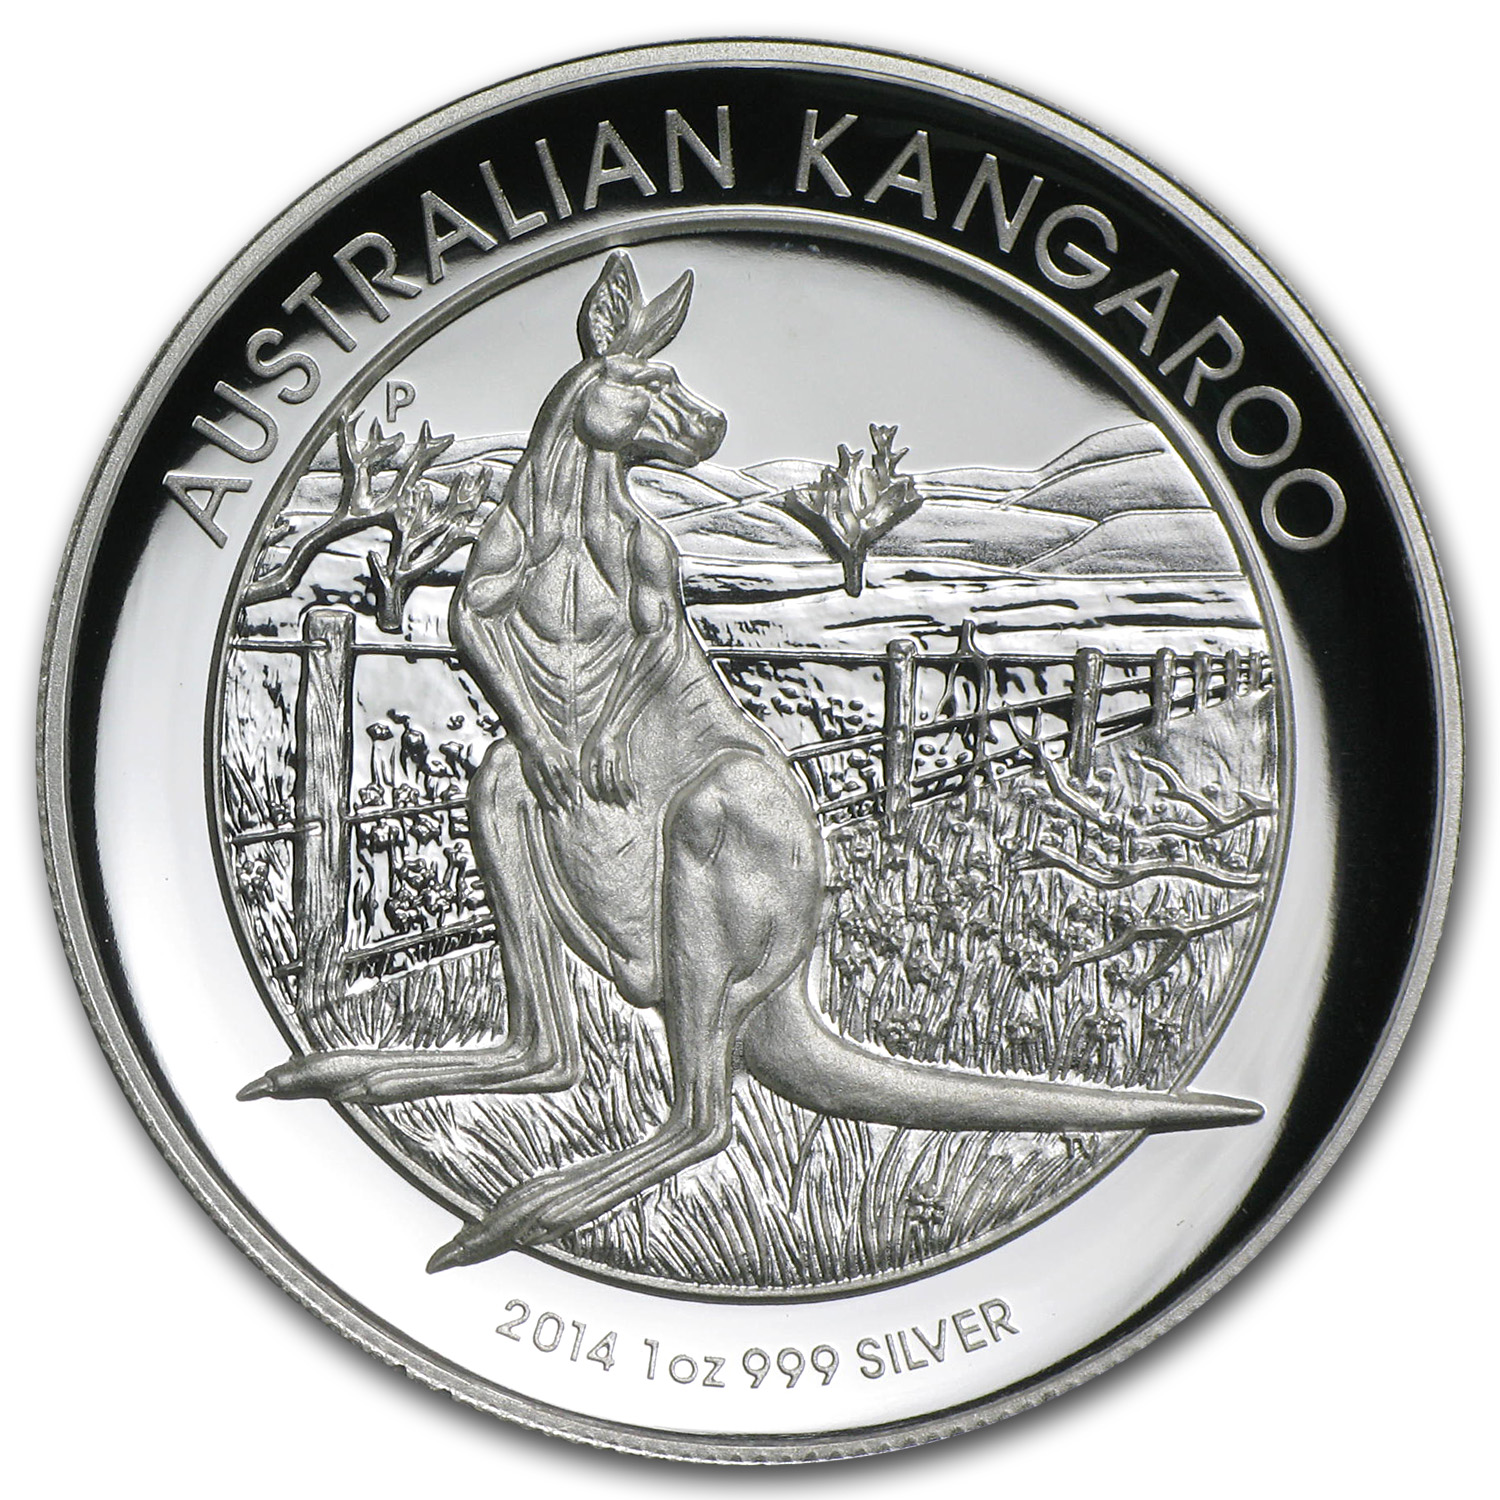 2014 Australia 1 oz Silver Kangaroo Proof (High Relief)